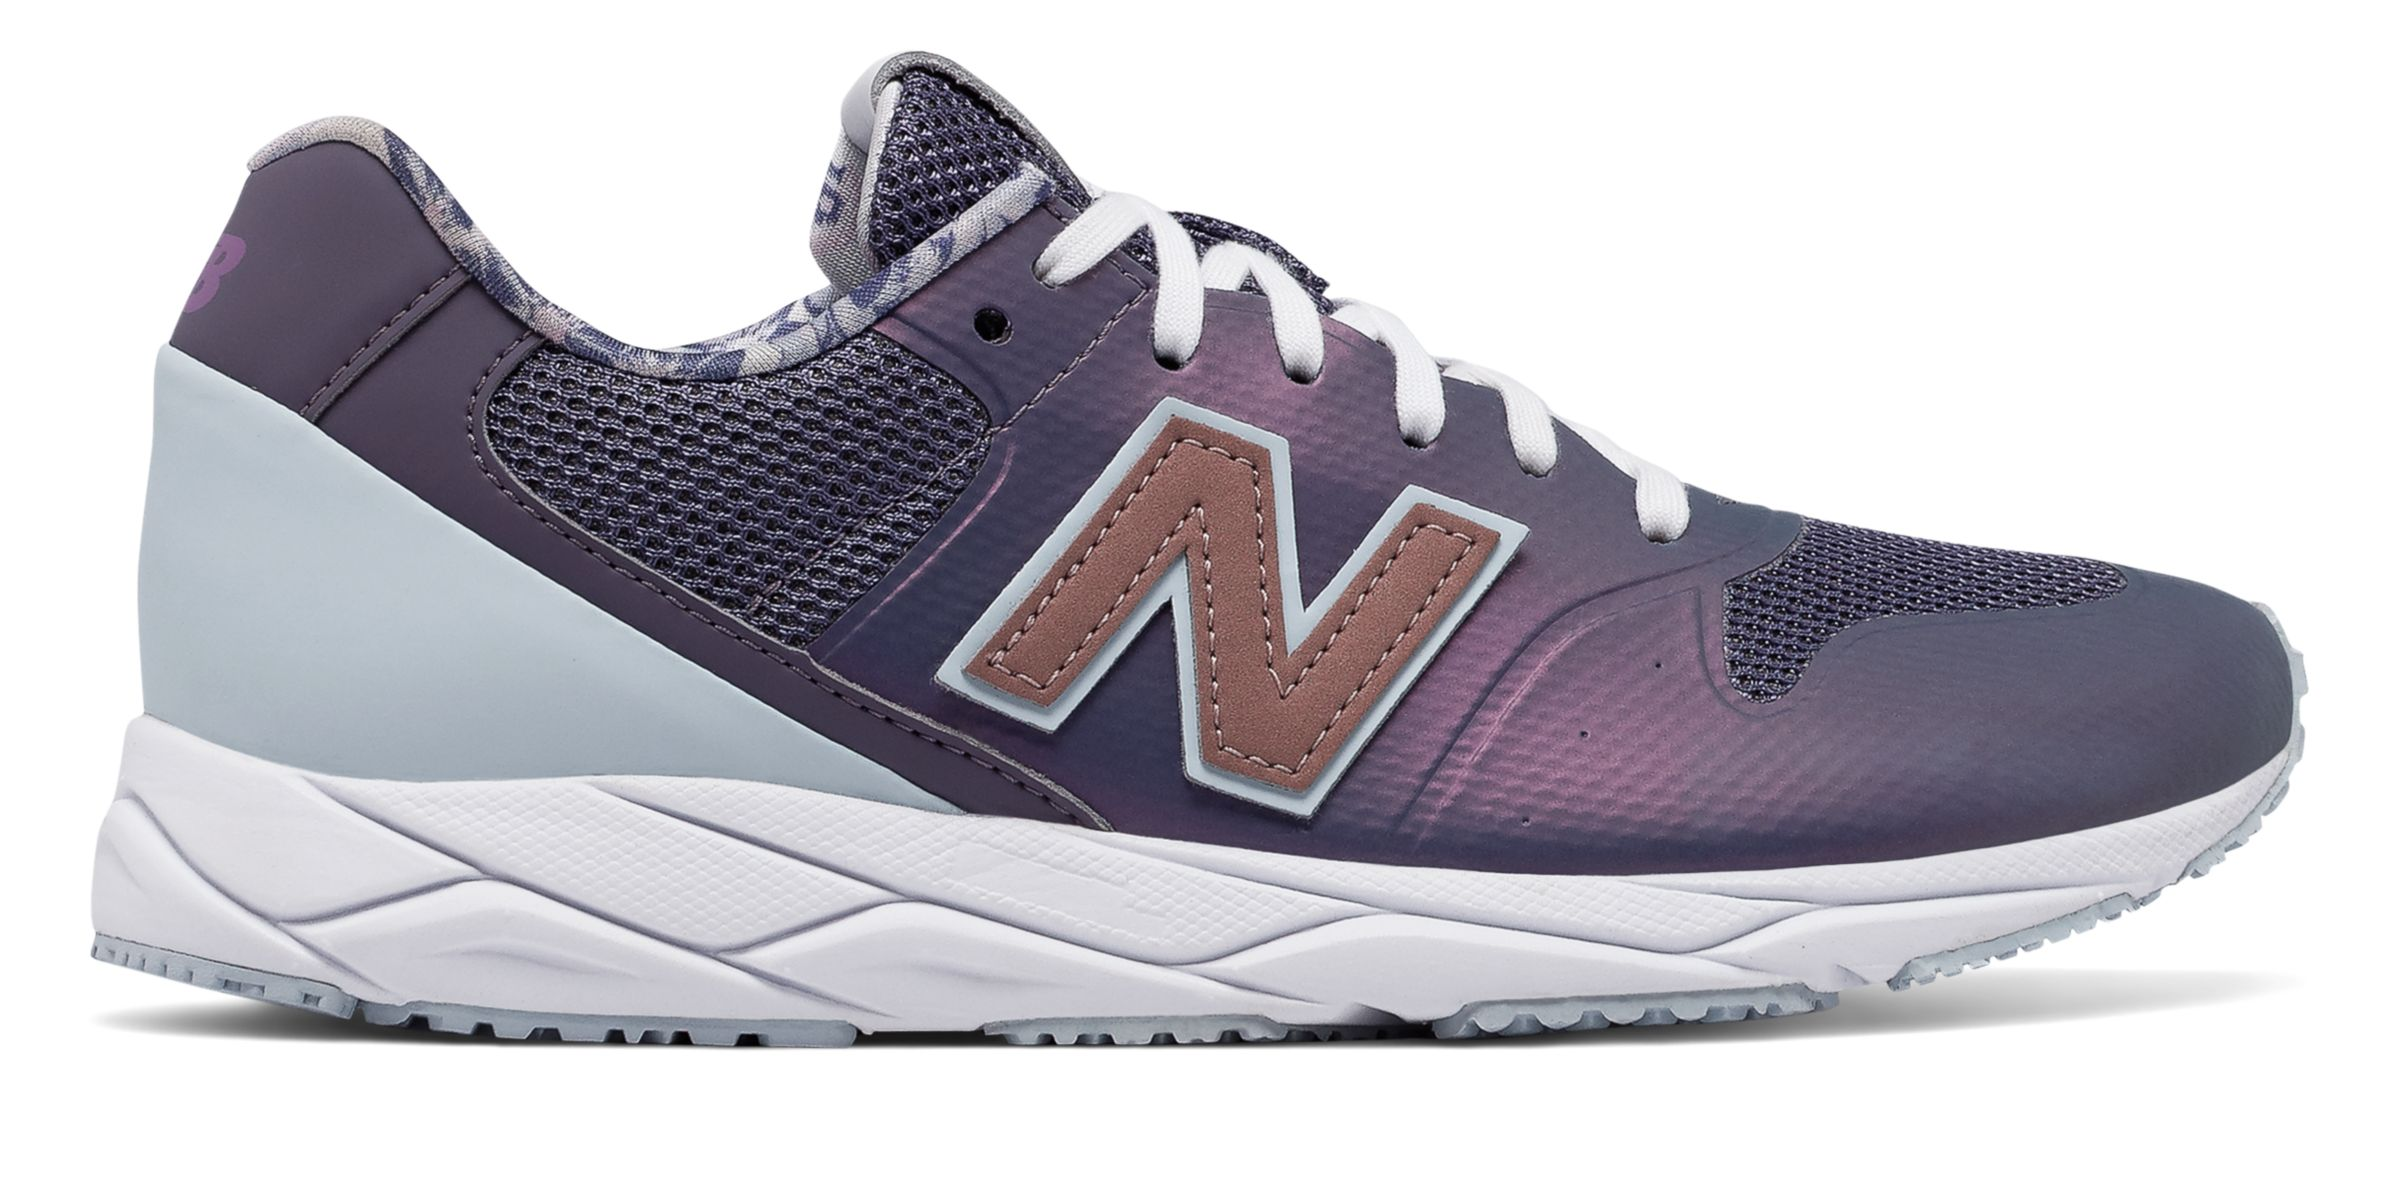 NB 96 REVlite, Deep Cosmic Sky with Light Porcelain Blue & Rose Gold